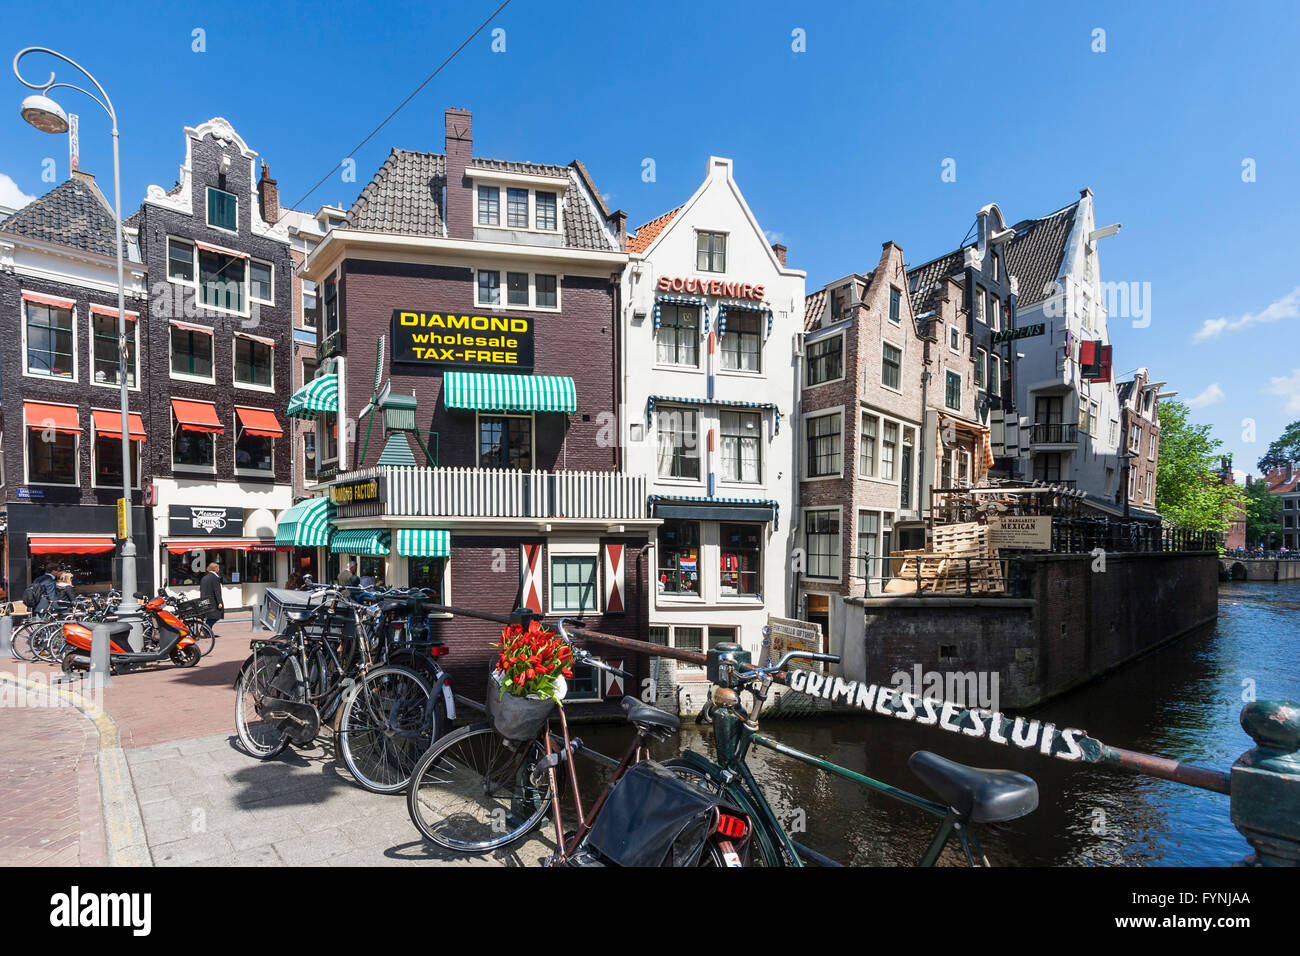 Amsterdam diamont factory , Grimnesssluis, bicycles, tulips,  Amsterdam, Netherlands Stock Photo